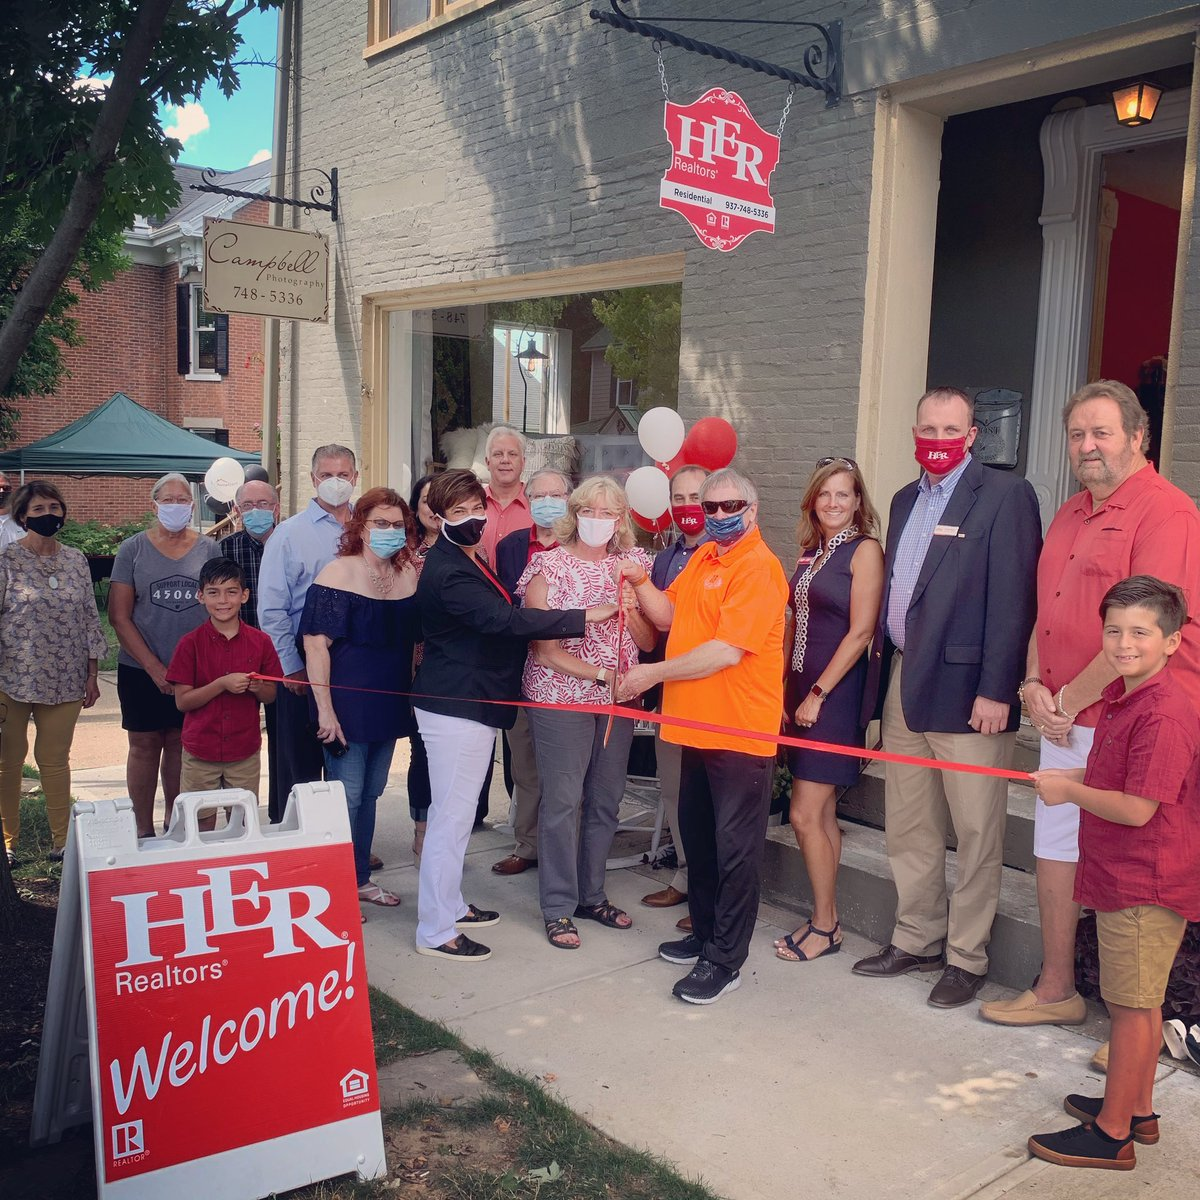 Congratulations to Kerin Campbell, Cindy Kirchoff, and @HERrealtors on the Grand Opening & Ribbon Cutting of their NEW location at 209 South Main Street in Historic Springboro!